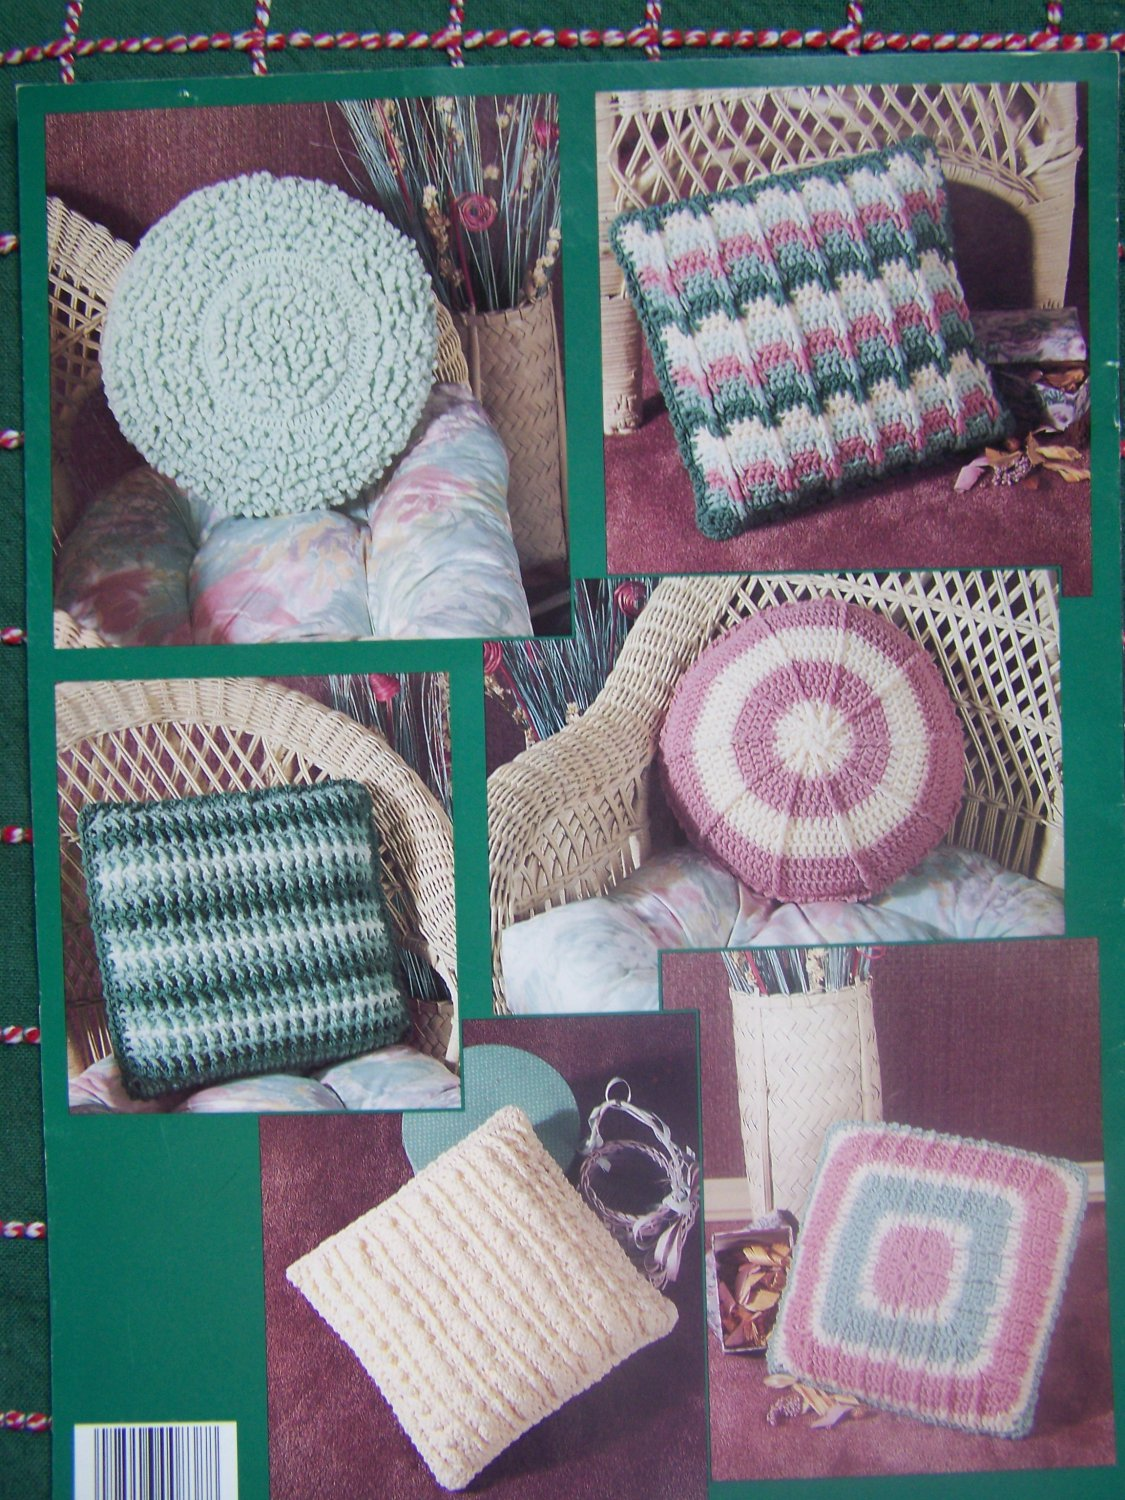 Vintage Crochet Patterns To Make 2 Round & 4 Square Pillows 838 Book 3